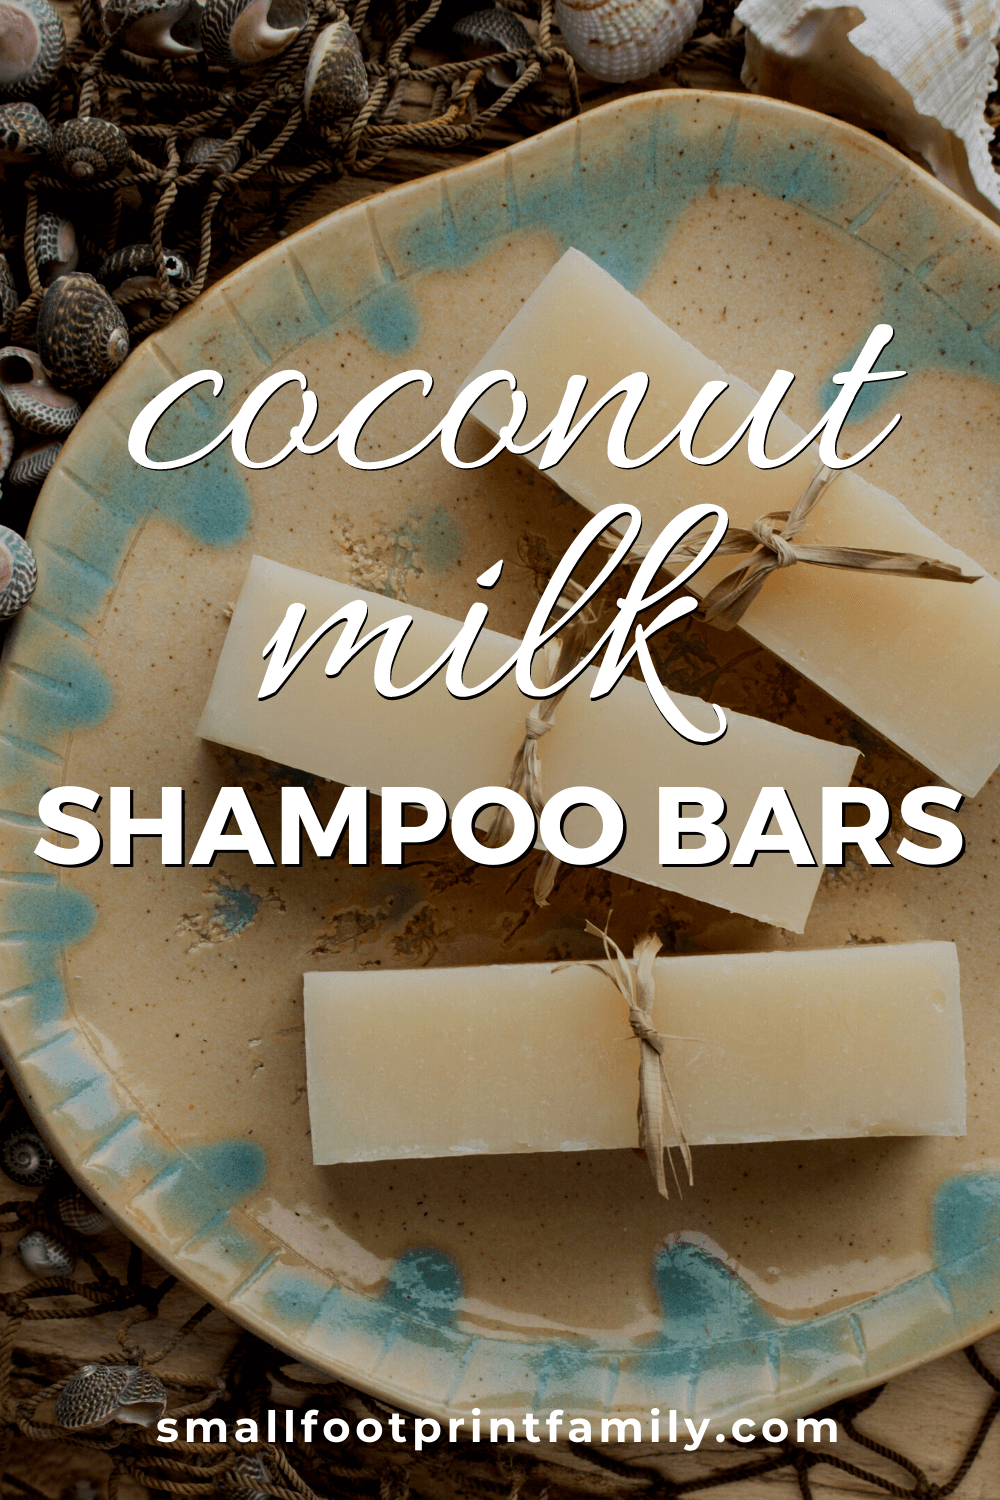 coconut milk shampoo bar recipe | small footprint family